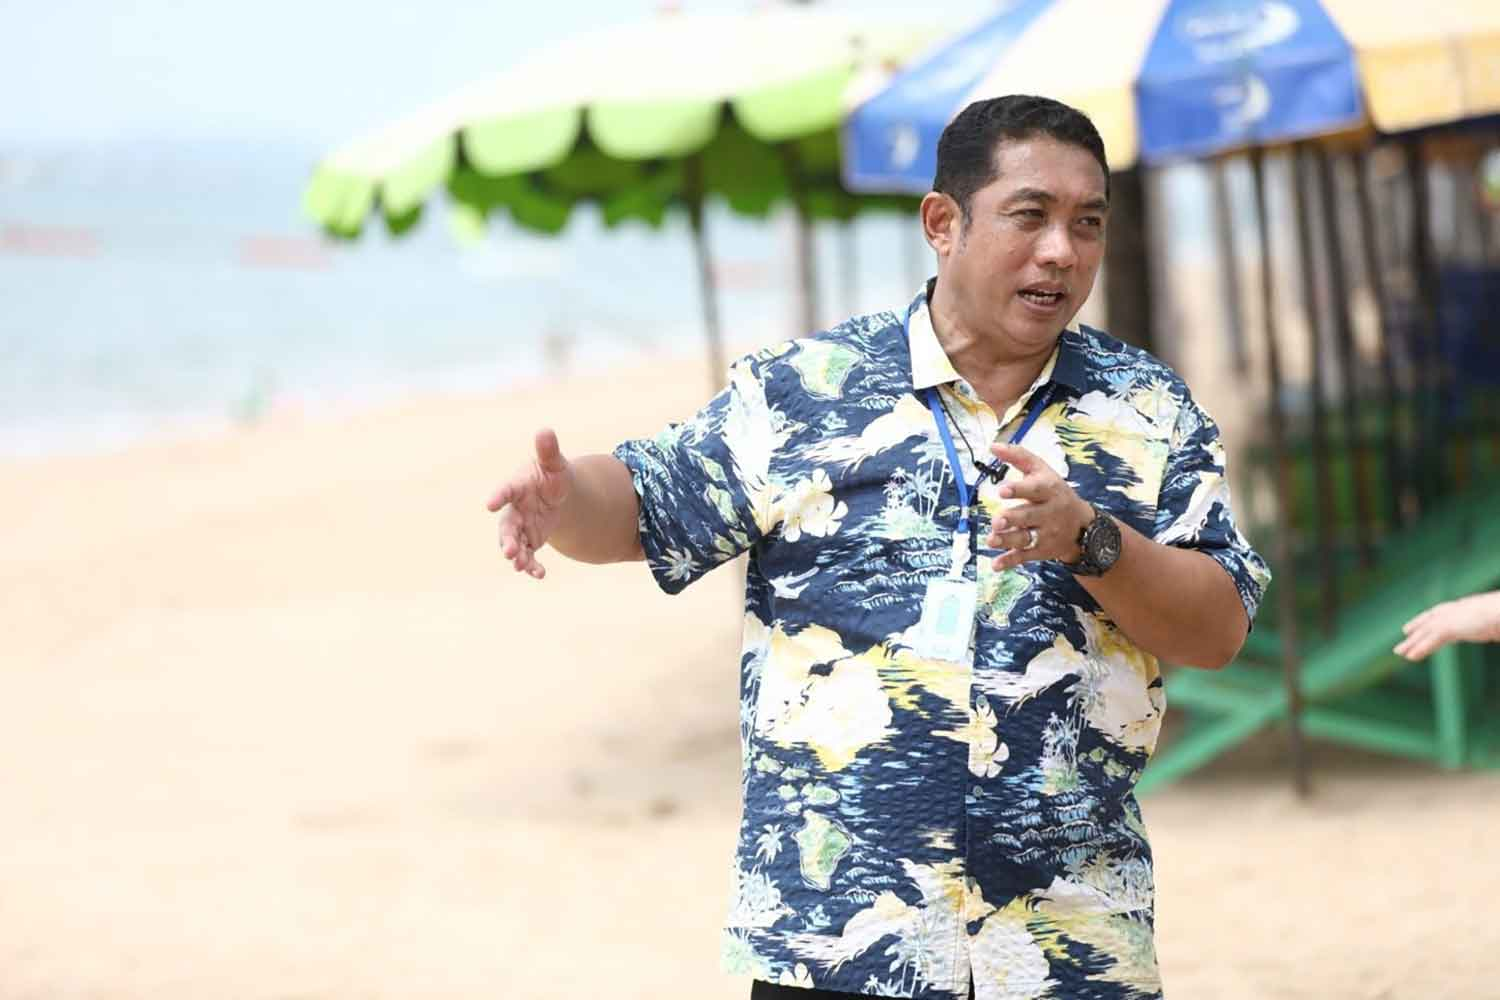 Pattaya mayor Sonthaya Khunpluem.